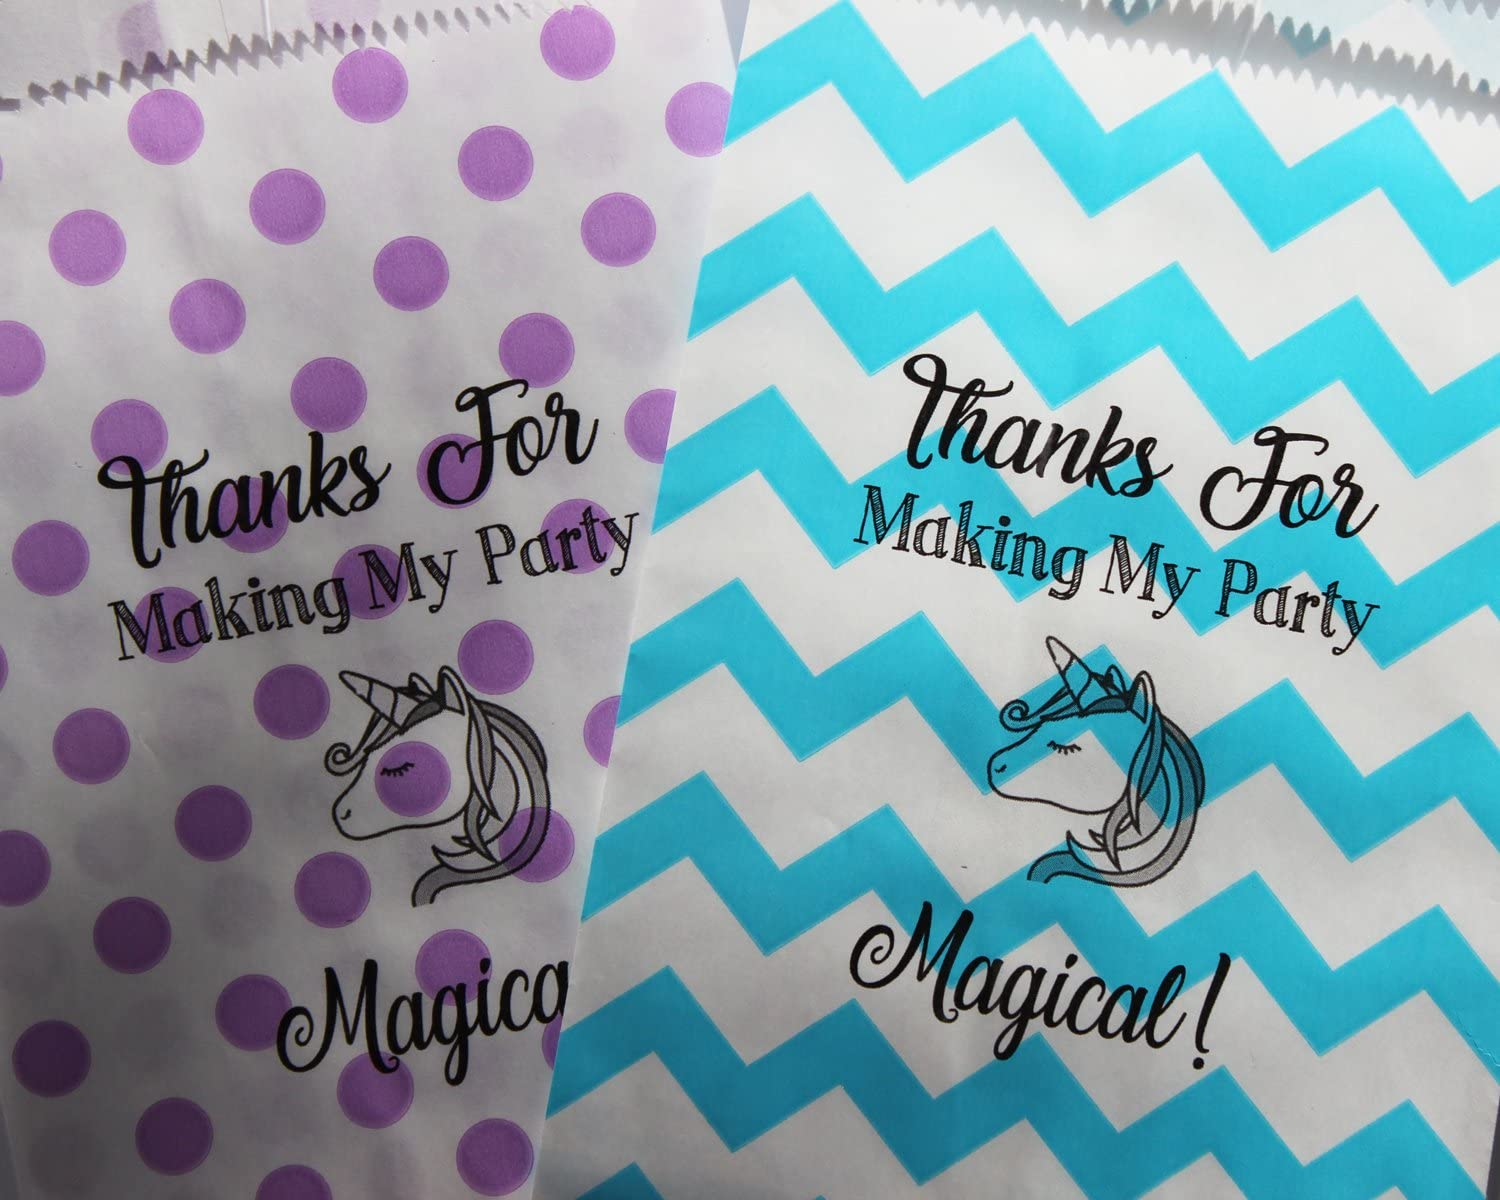 Bakers Bling Birthday Party Unicorn Favor Bags with Stickers, Thanks for Making My Party Magical, Purple Polka Dots, Aqua Blue Chevron, 5.5